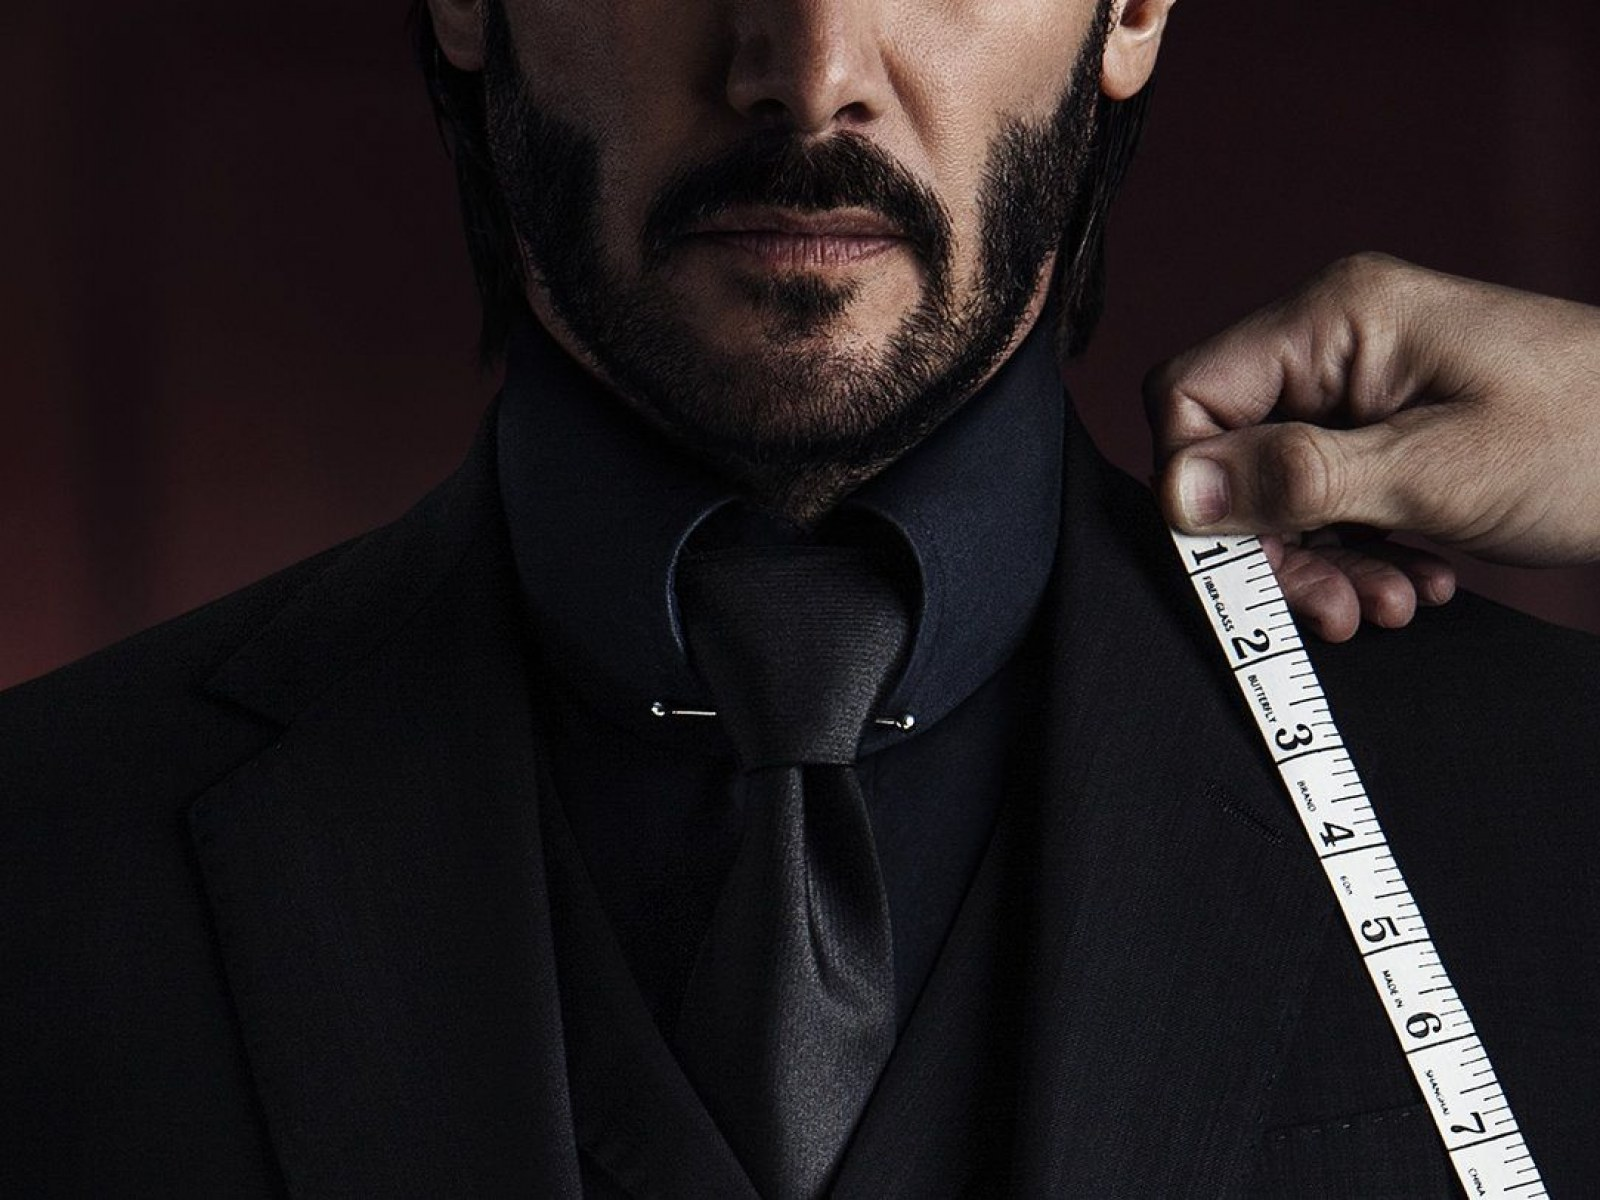 Why Keanu Reeves Needed 180 Suits For John Wick 3